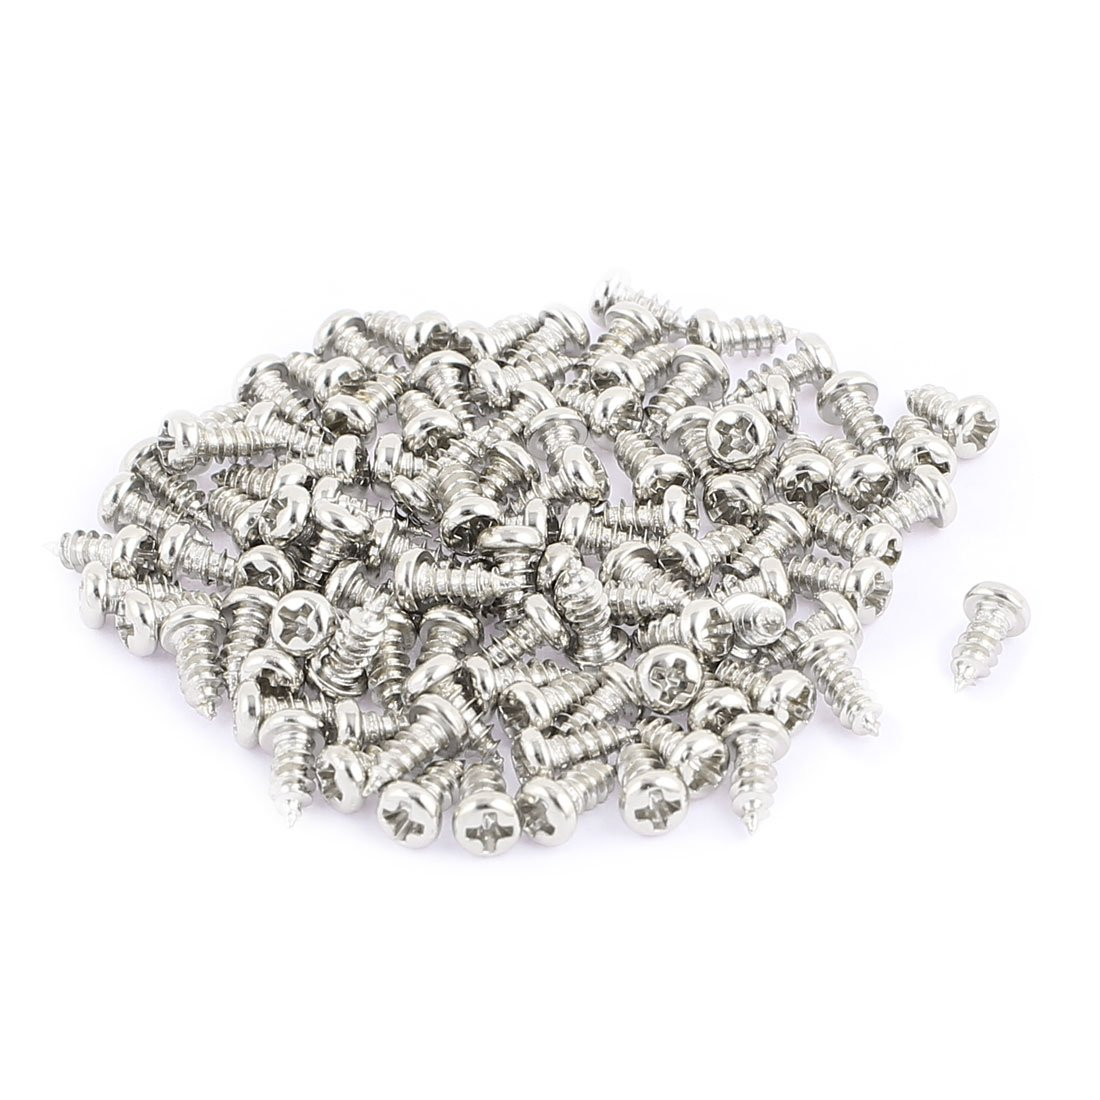 uxcell 100pcs M2.5 x 6mm Stainless Steel Phillips Pan Round Head Self Tapping Screws a16060200ux0367